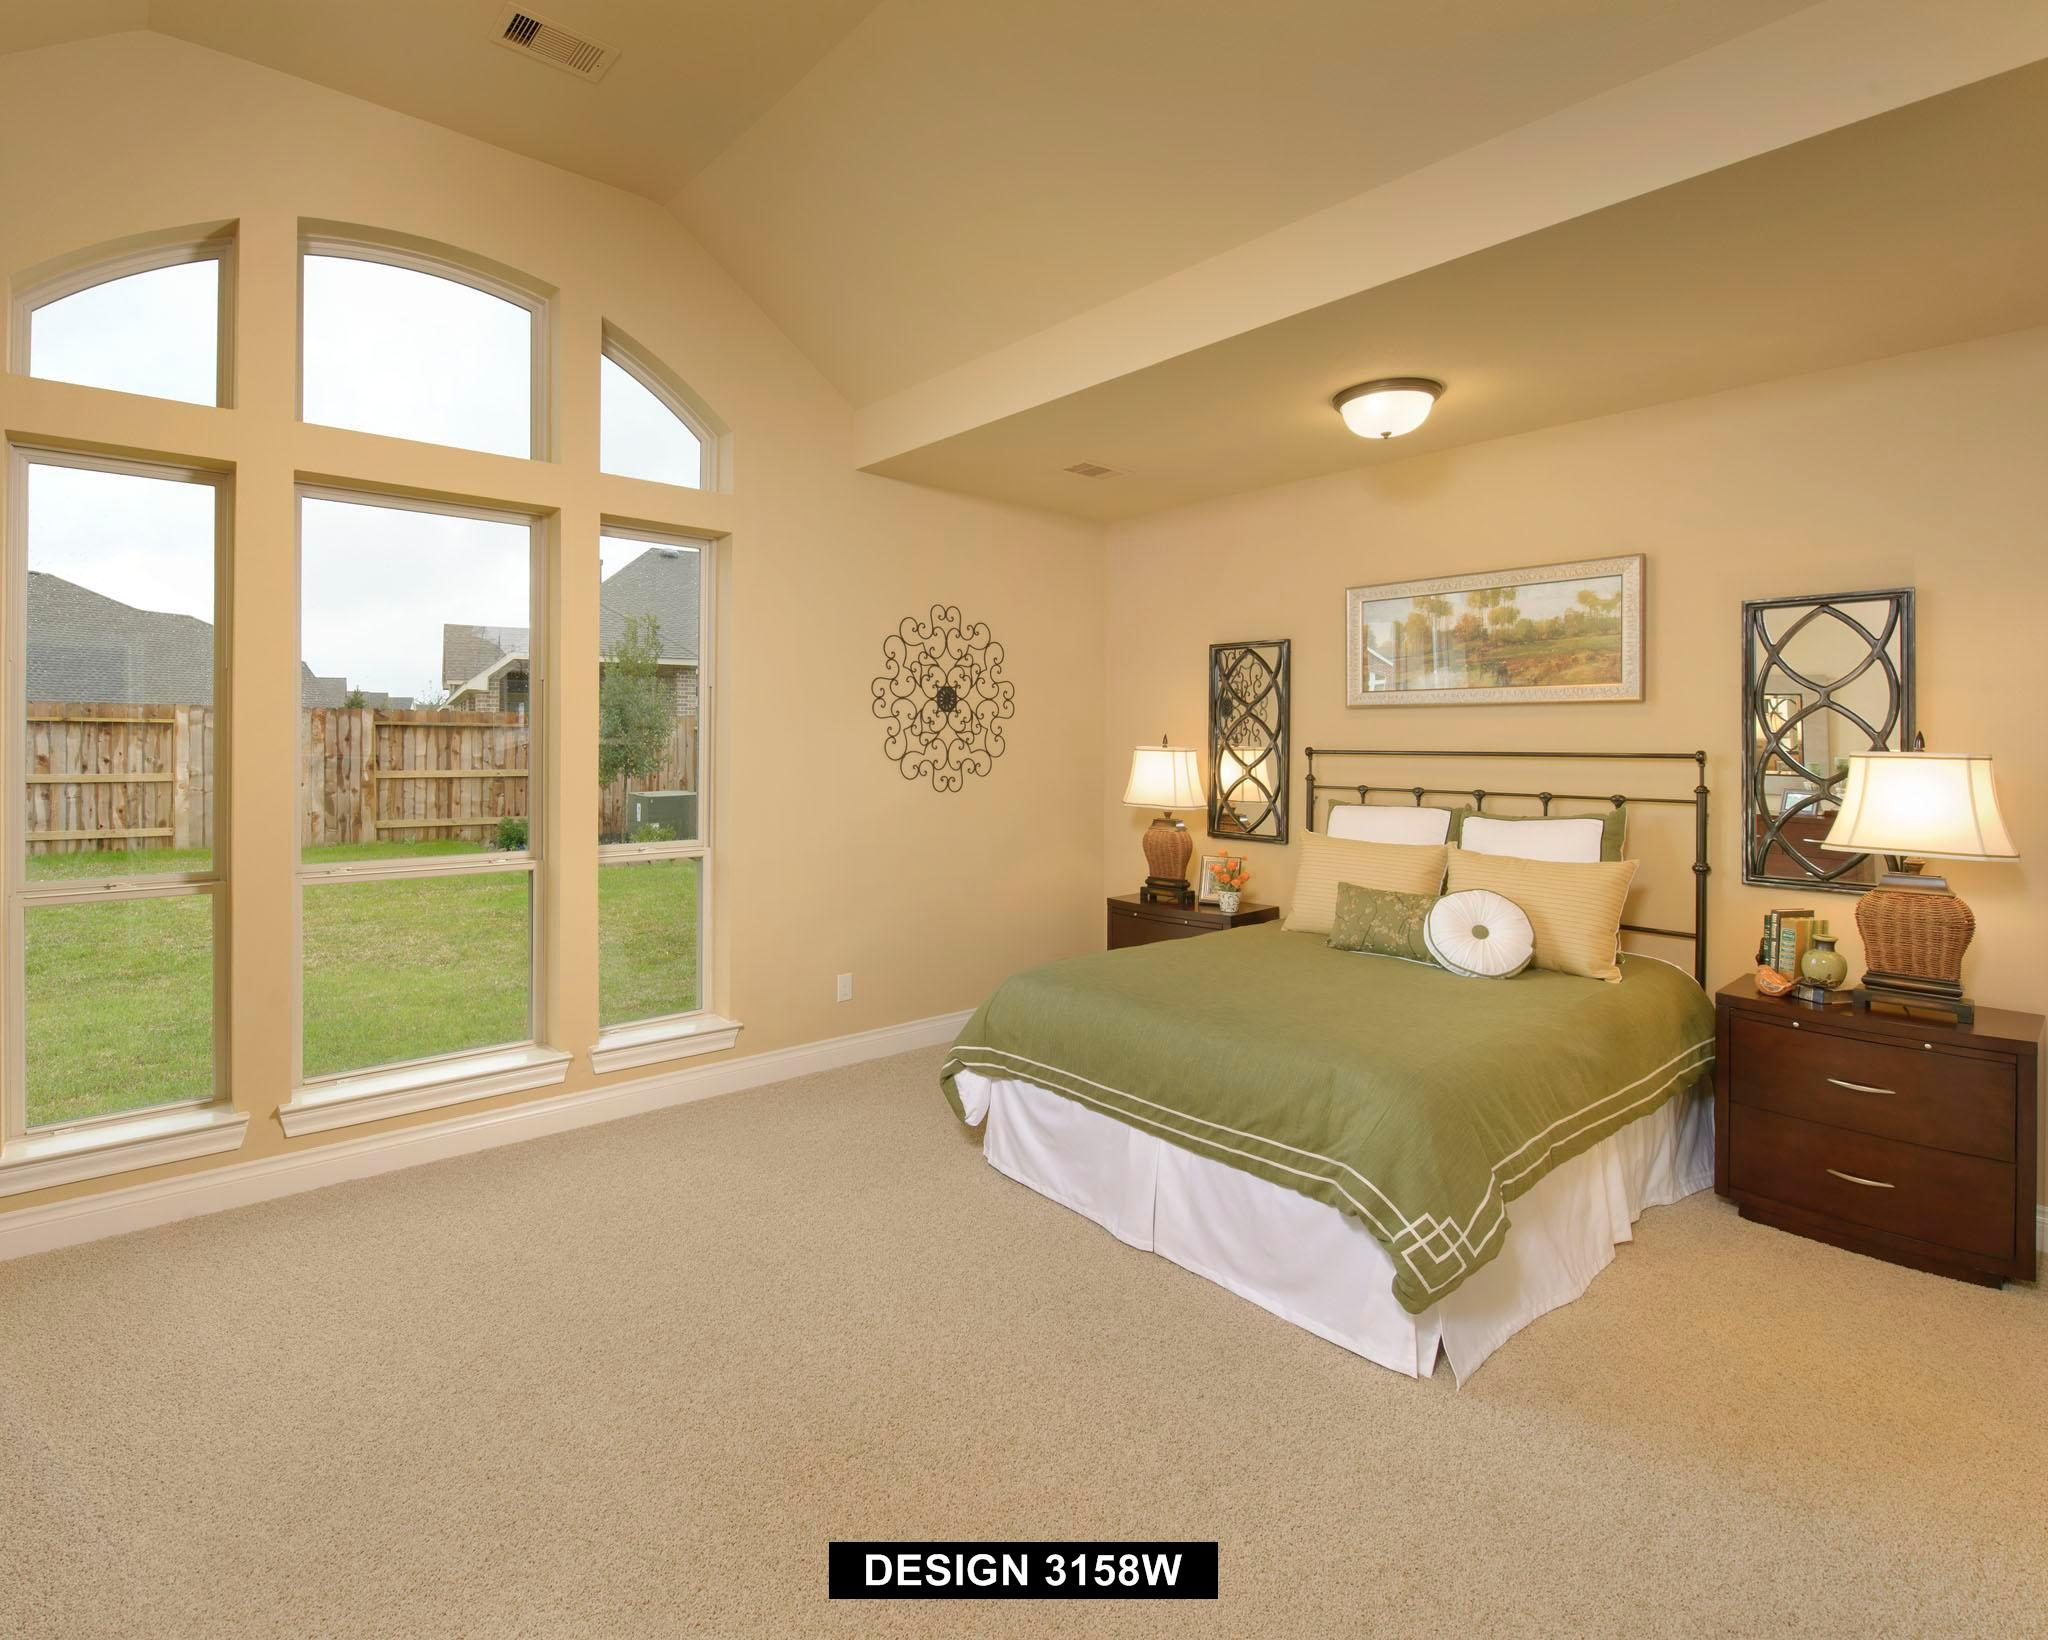 Bedroom featured in the 3158W By Perry Homes in Dallas, TX